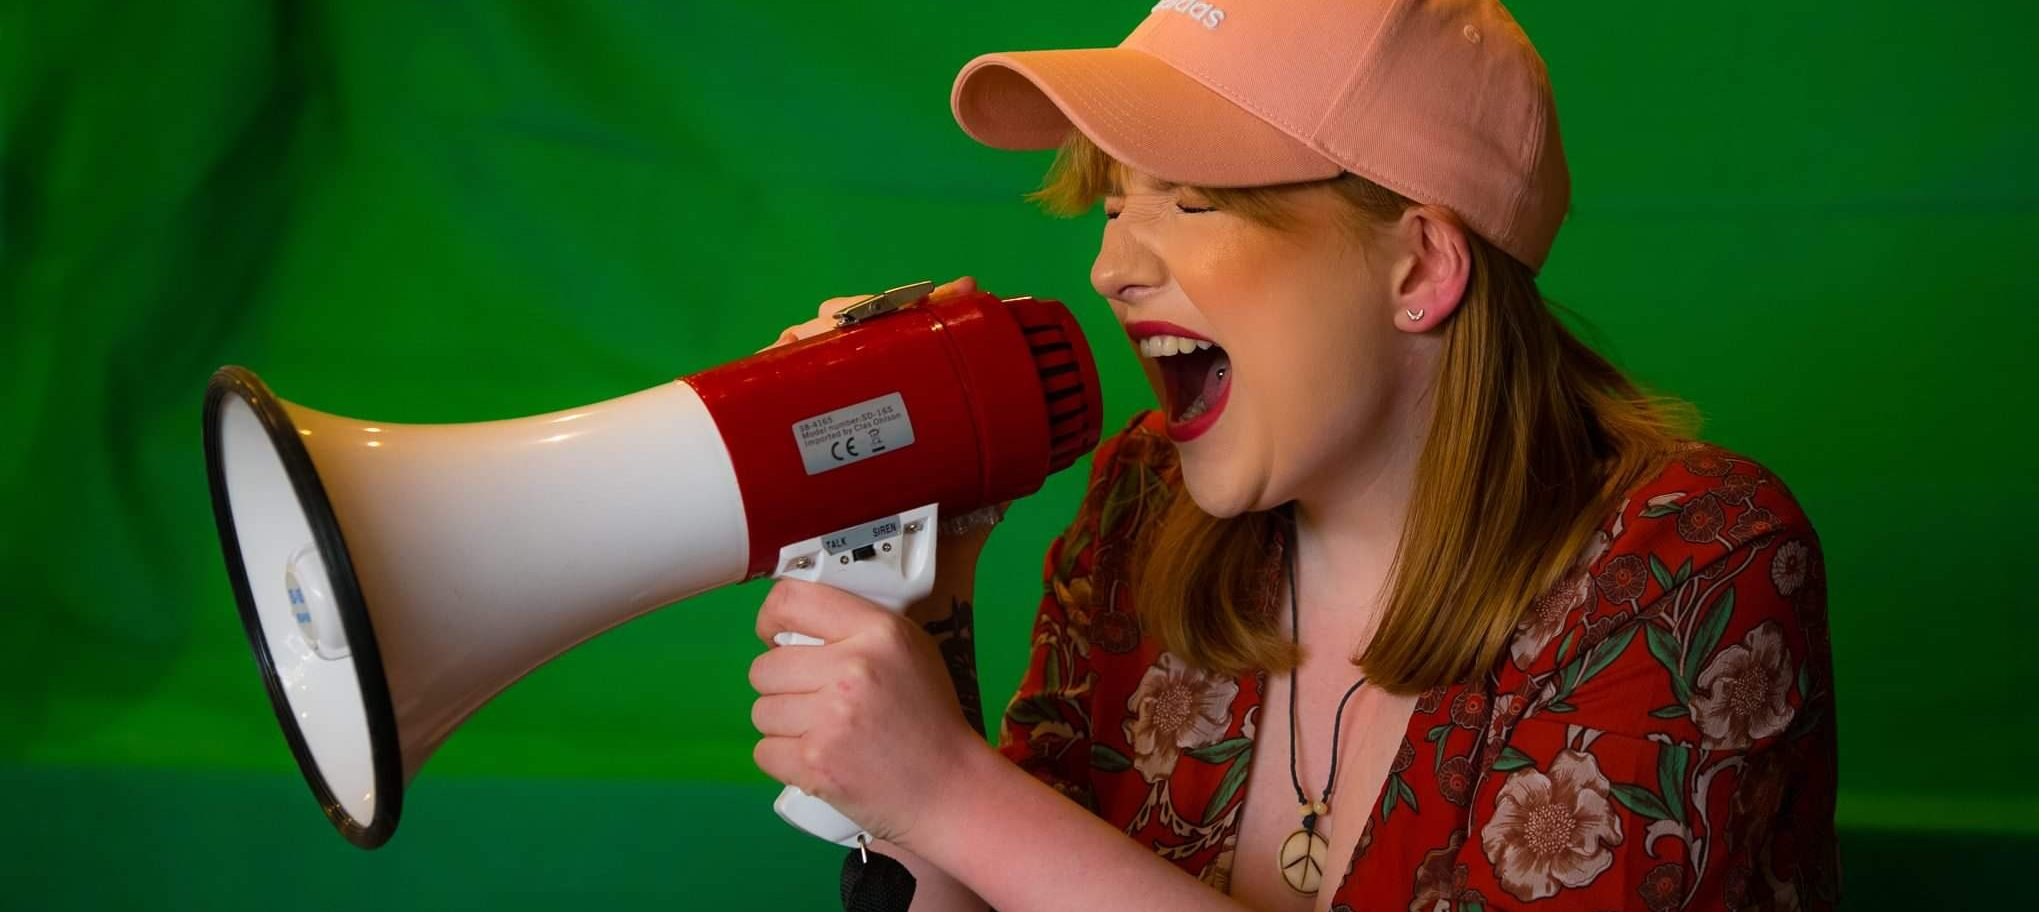 Jodie Langford wearing a pink baseball cap, holding a megaphone up to her mouth and visibly yelling!